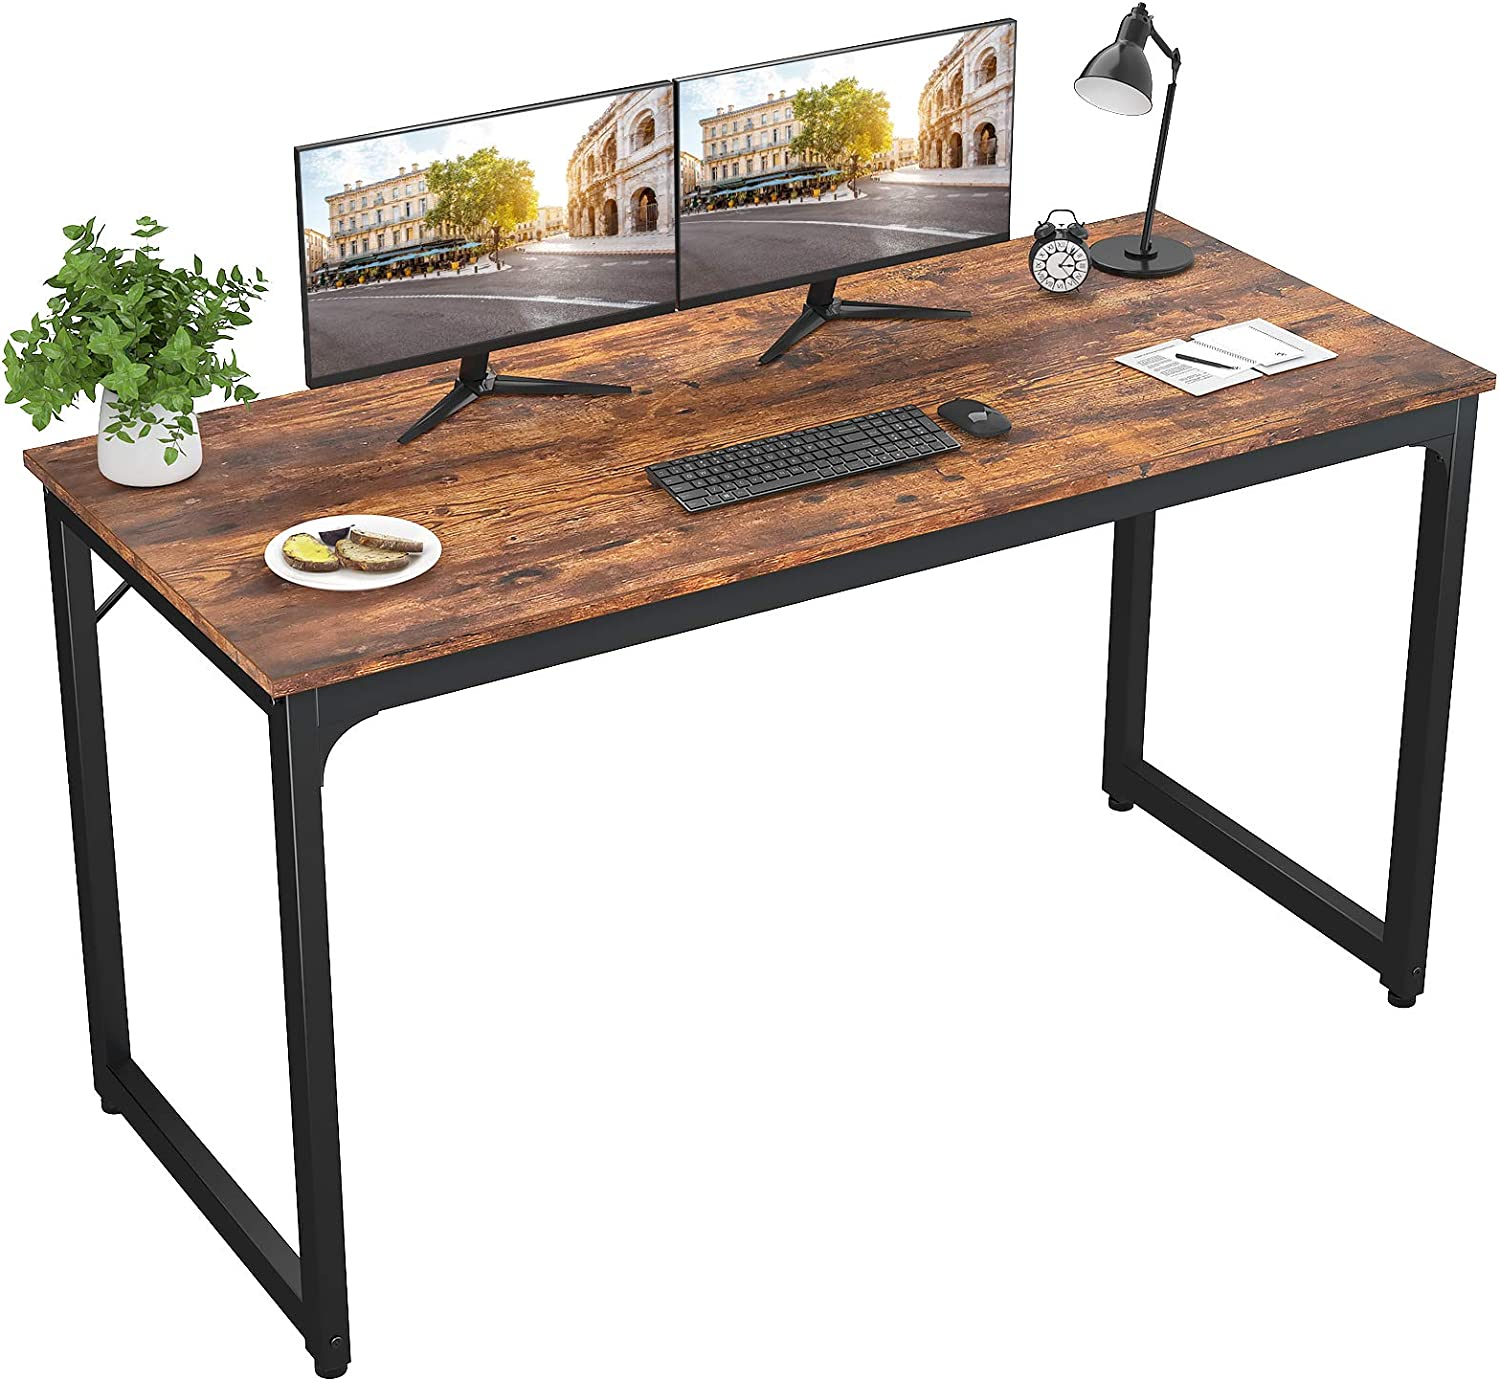 """Foxemart 55 Inch Computer Desk Modern Sturdy Office Desks 55"""" PC Laptop Notebook Study Writing Table for Home Office Workstation, Rustic Brown"""